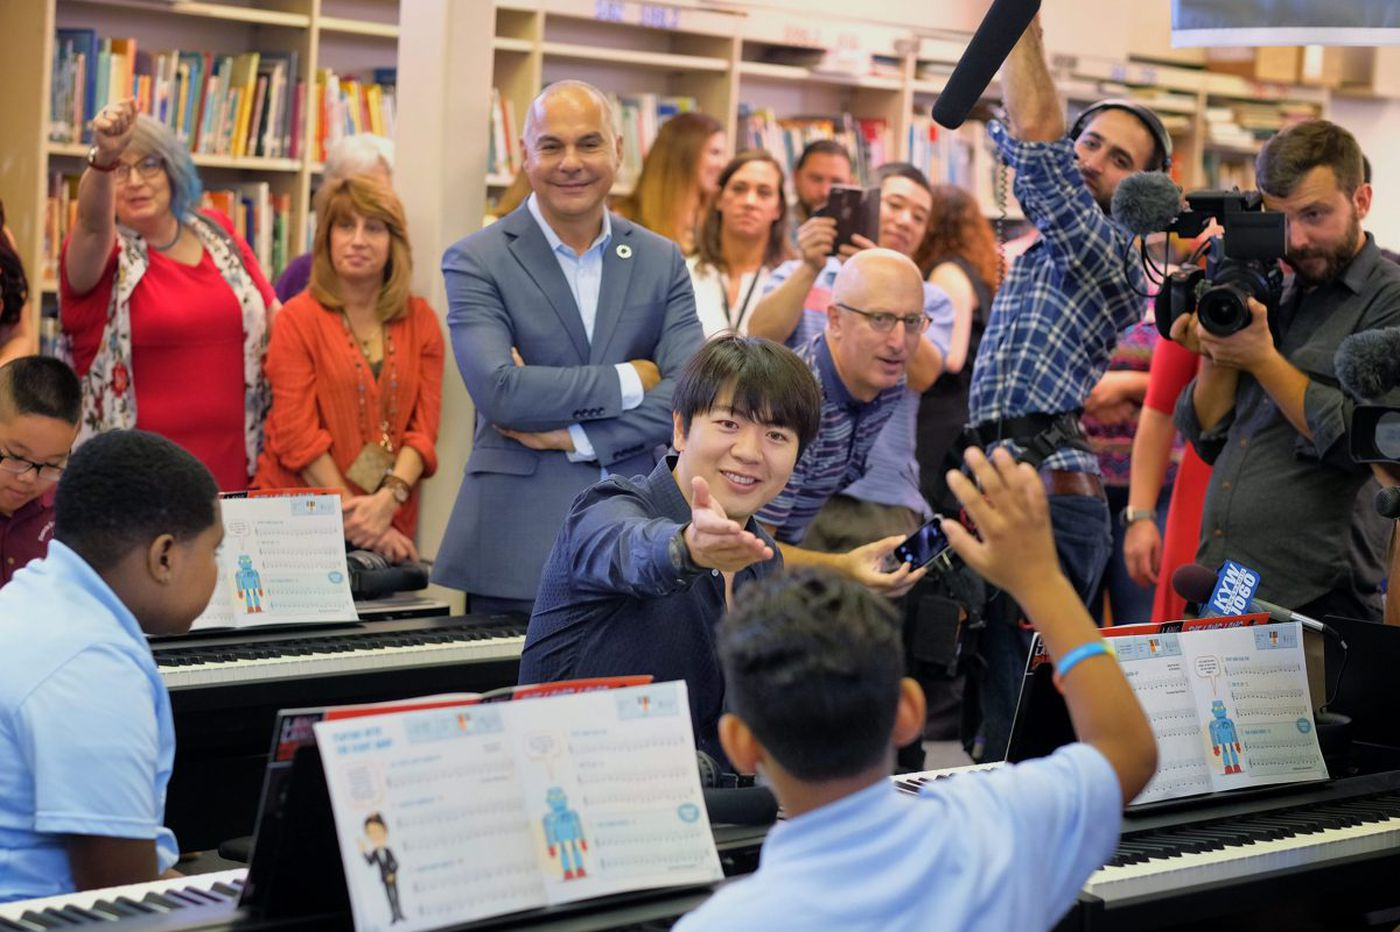 Pianist Lang Lang gives nearly $1M for piano education in Philly